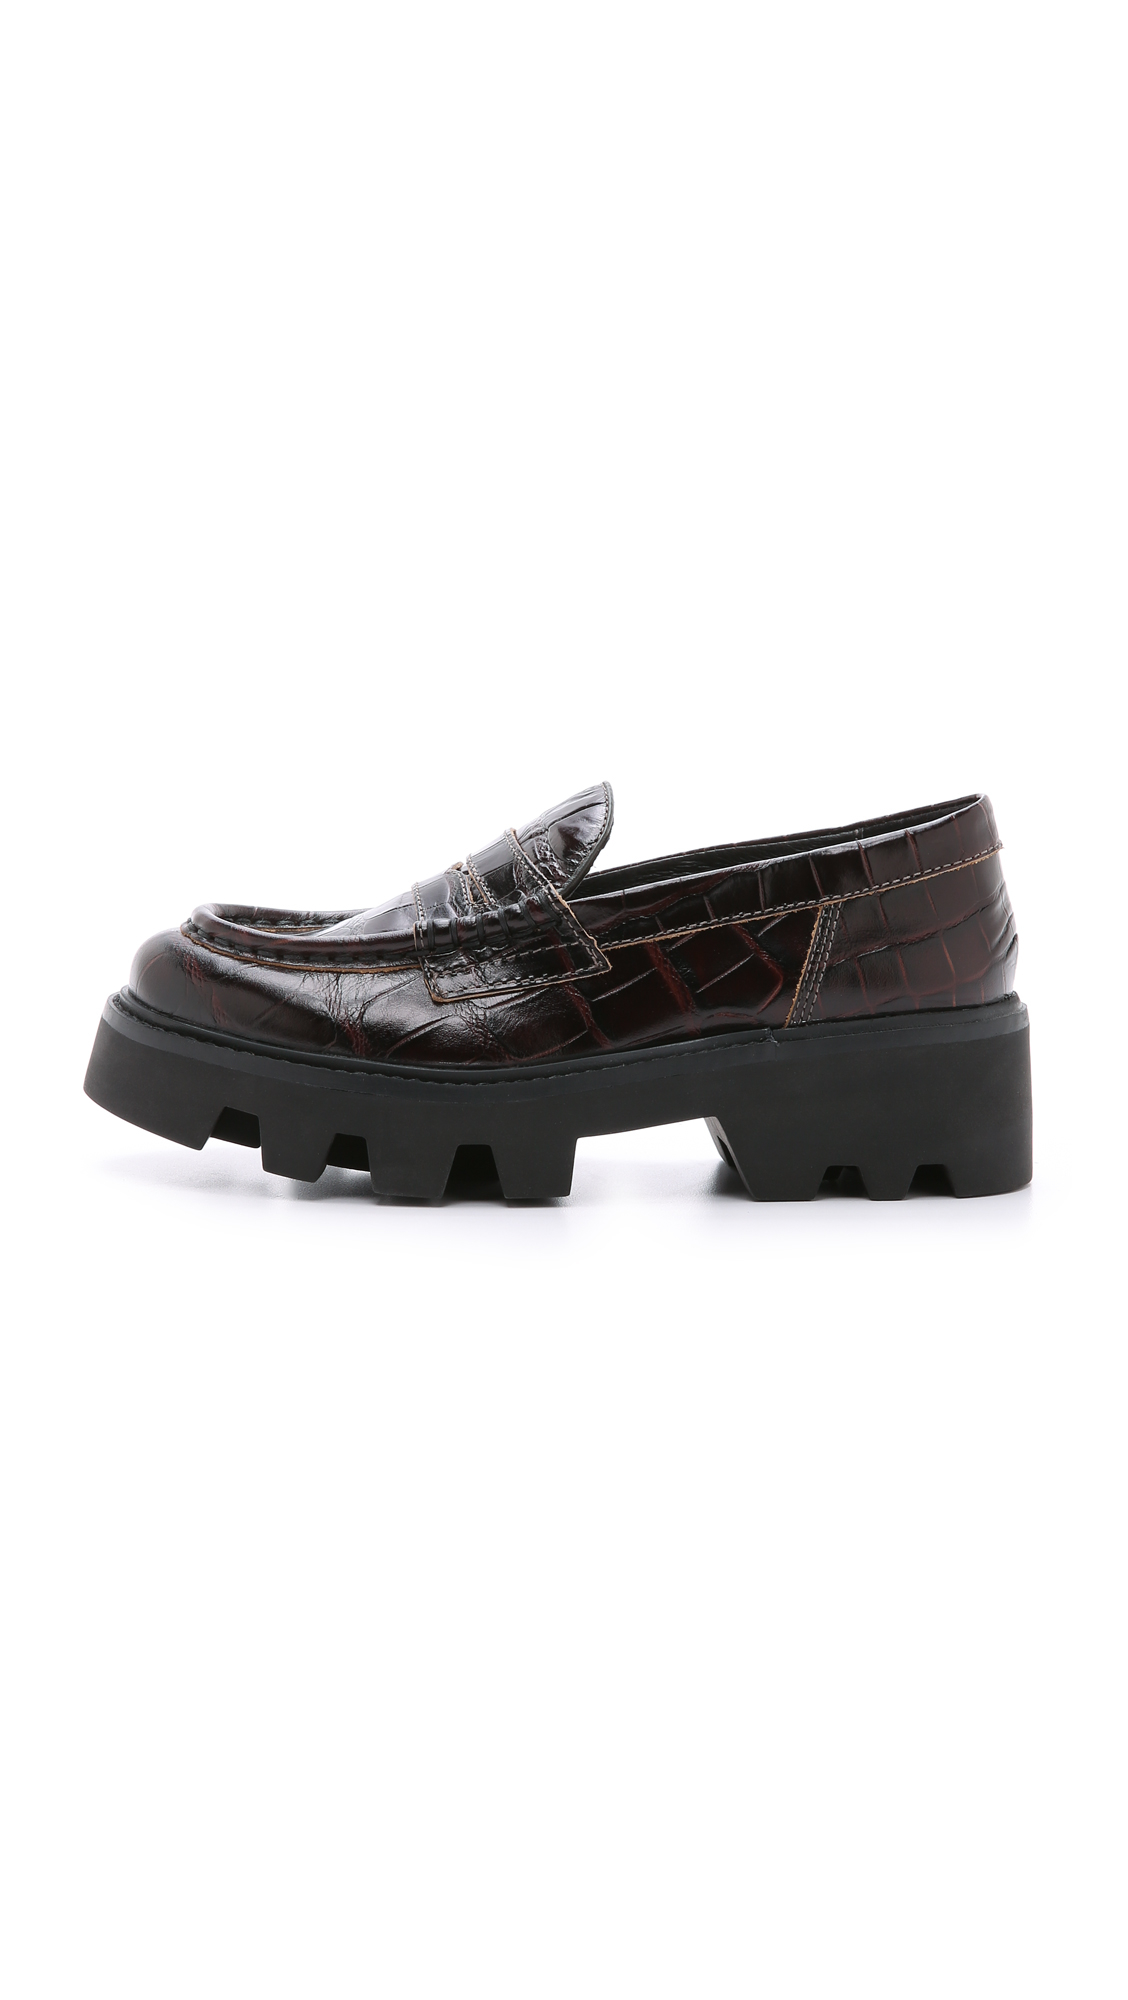 50a2ee4dbb5 Lyst - Ash Serum Loafers - Tmoro in Gray